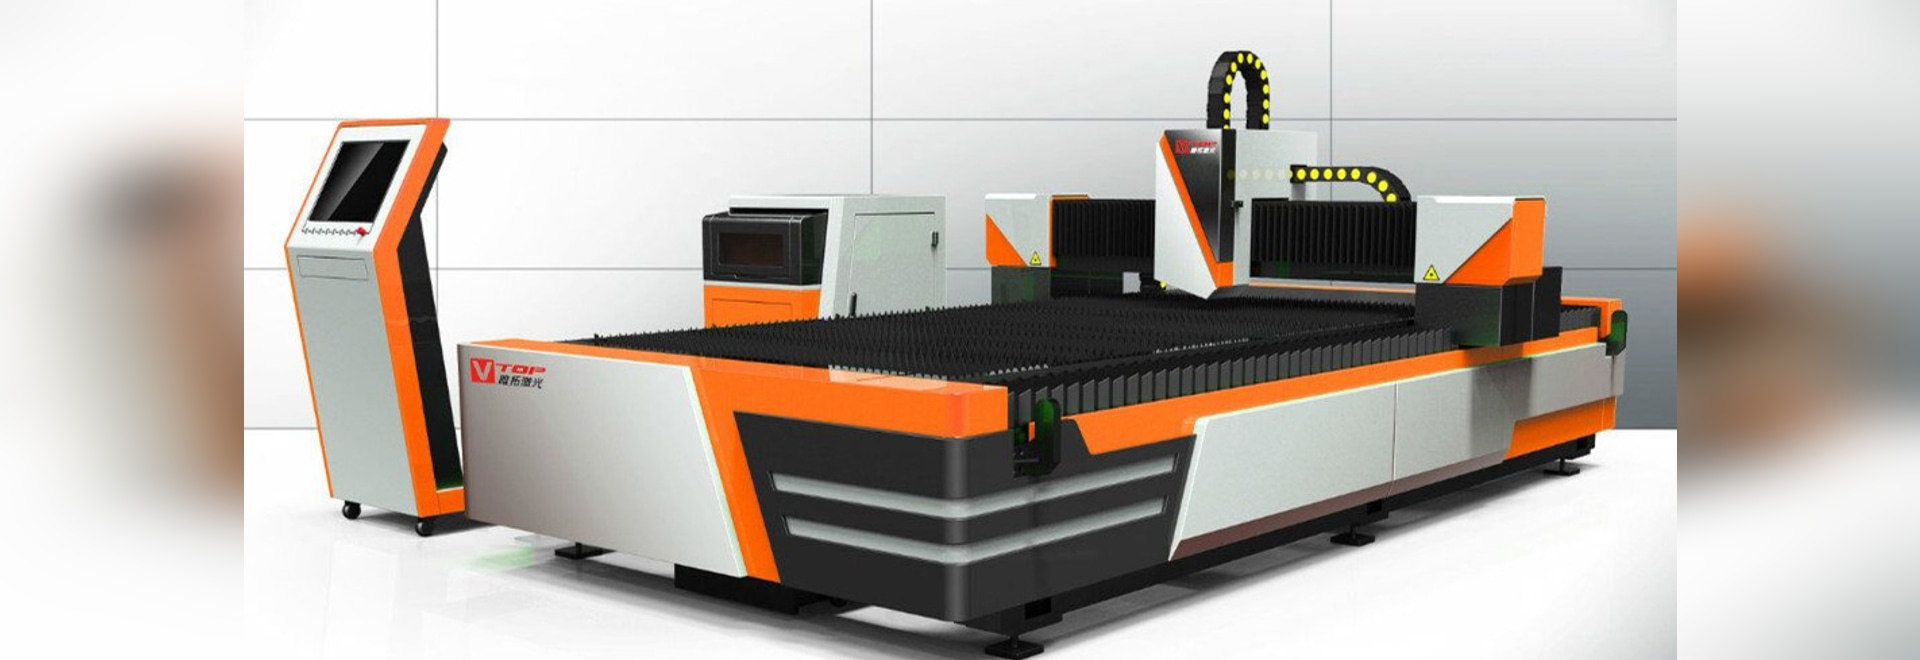 New Model Economic Open Type Fiber Laser Metal Sheet Cutting Machine Designed By Golden Vtop Laser